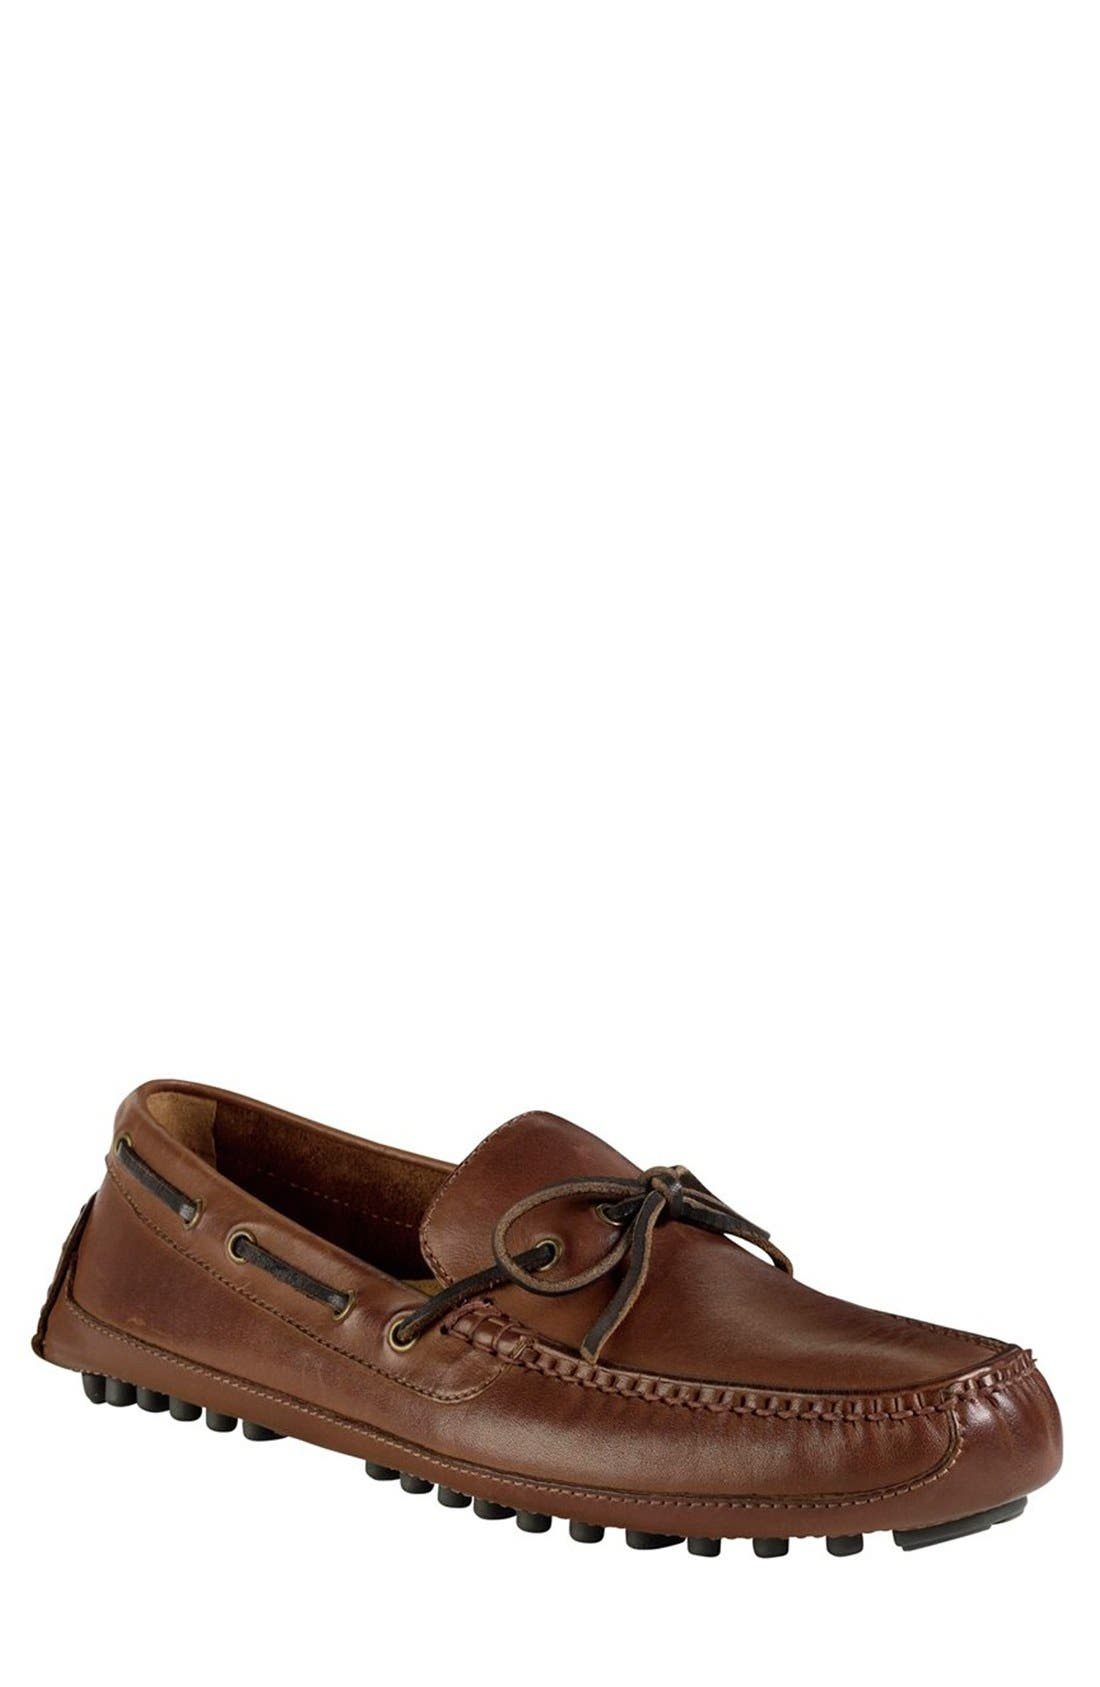 c4ea05513f Cole Haan - Men's Casual Fashion Shoes and Sneakers